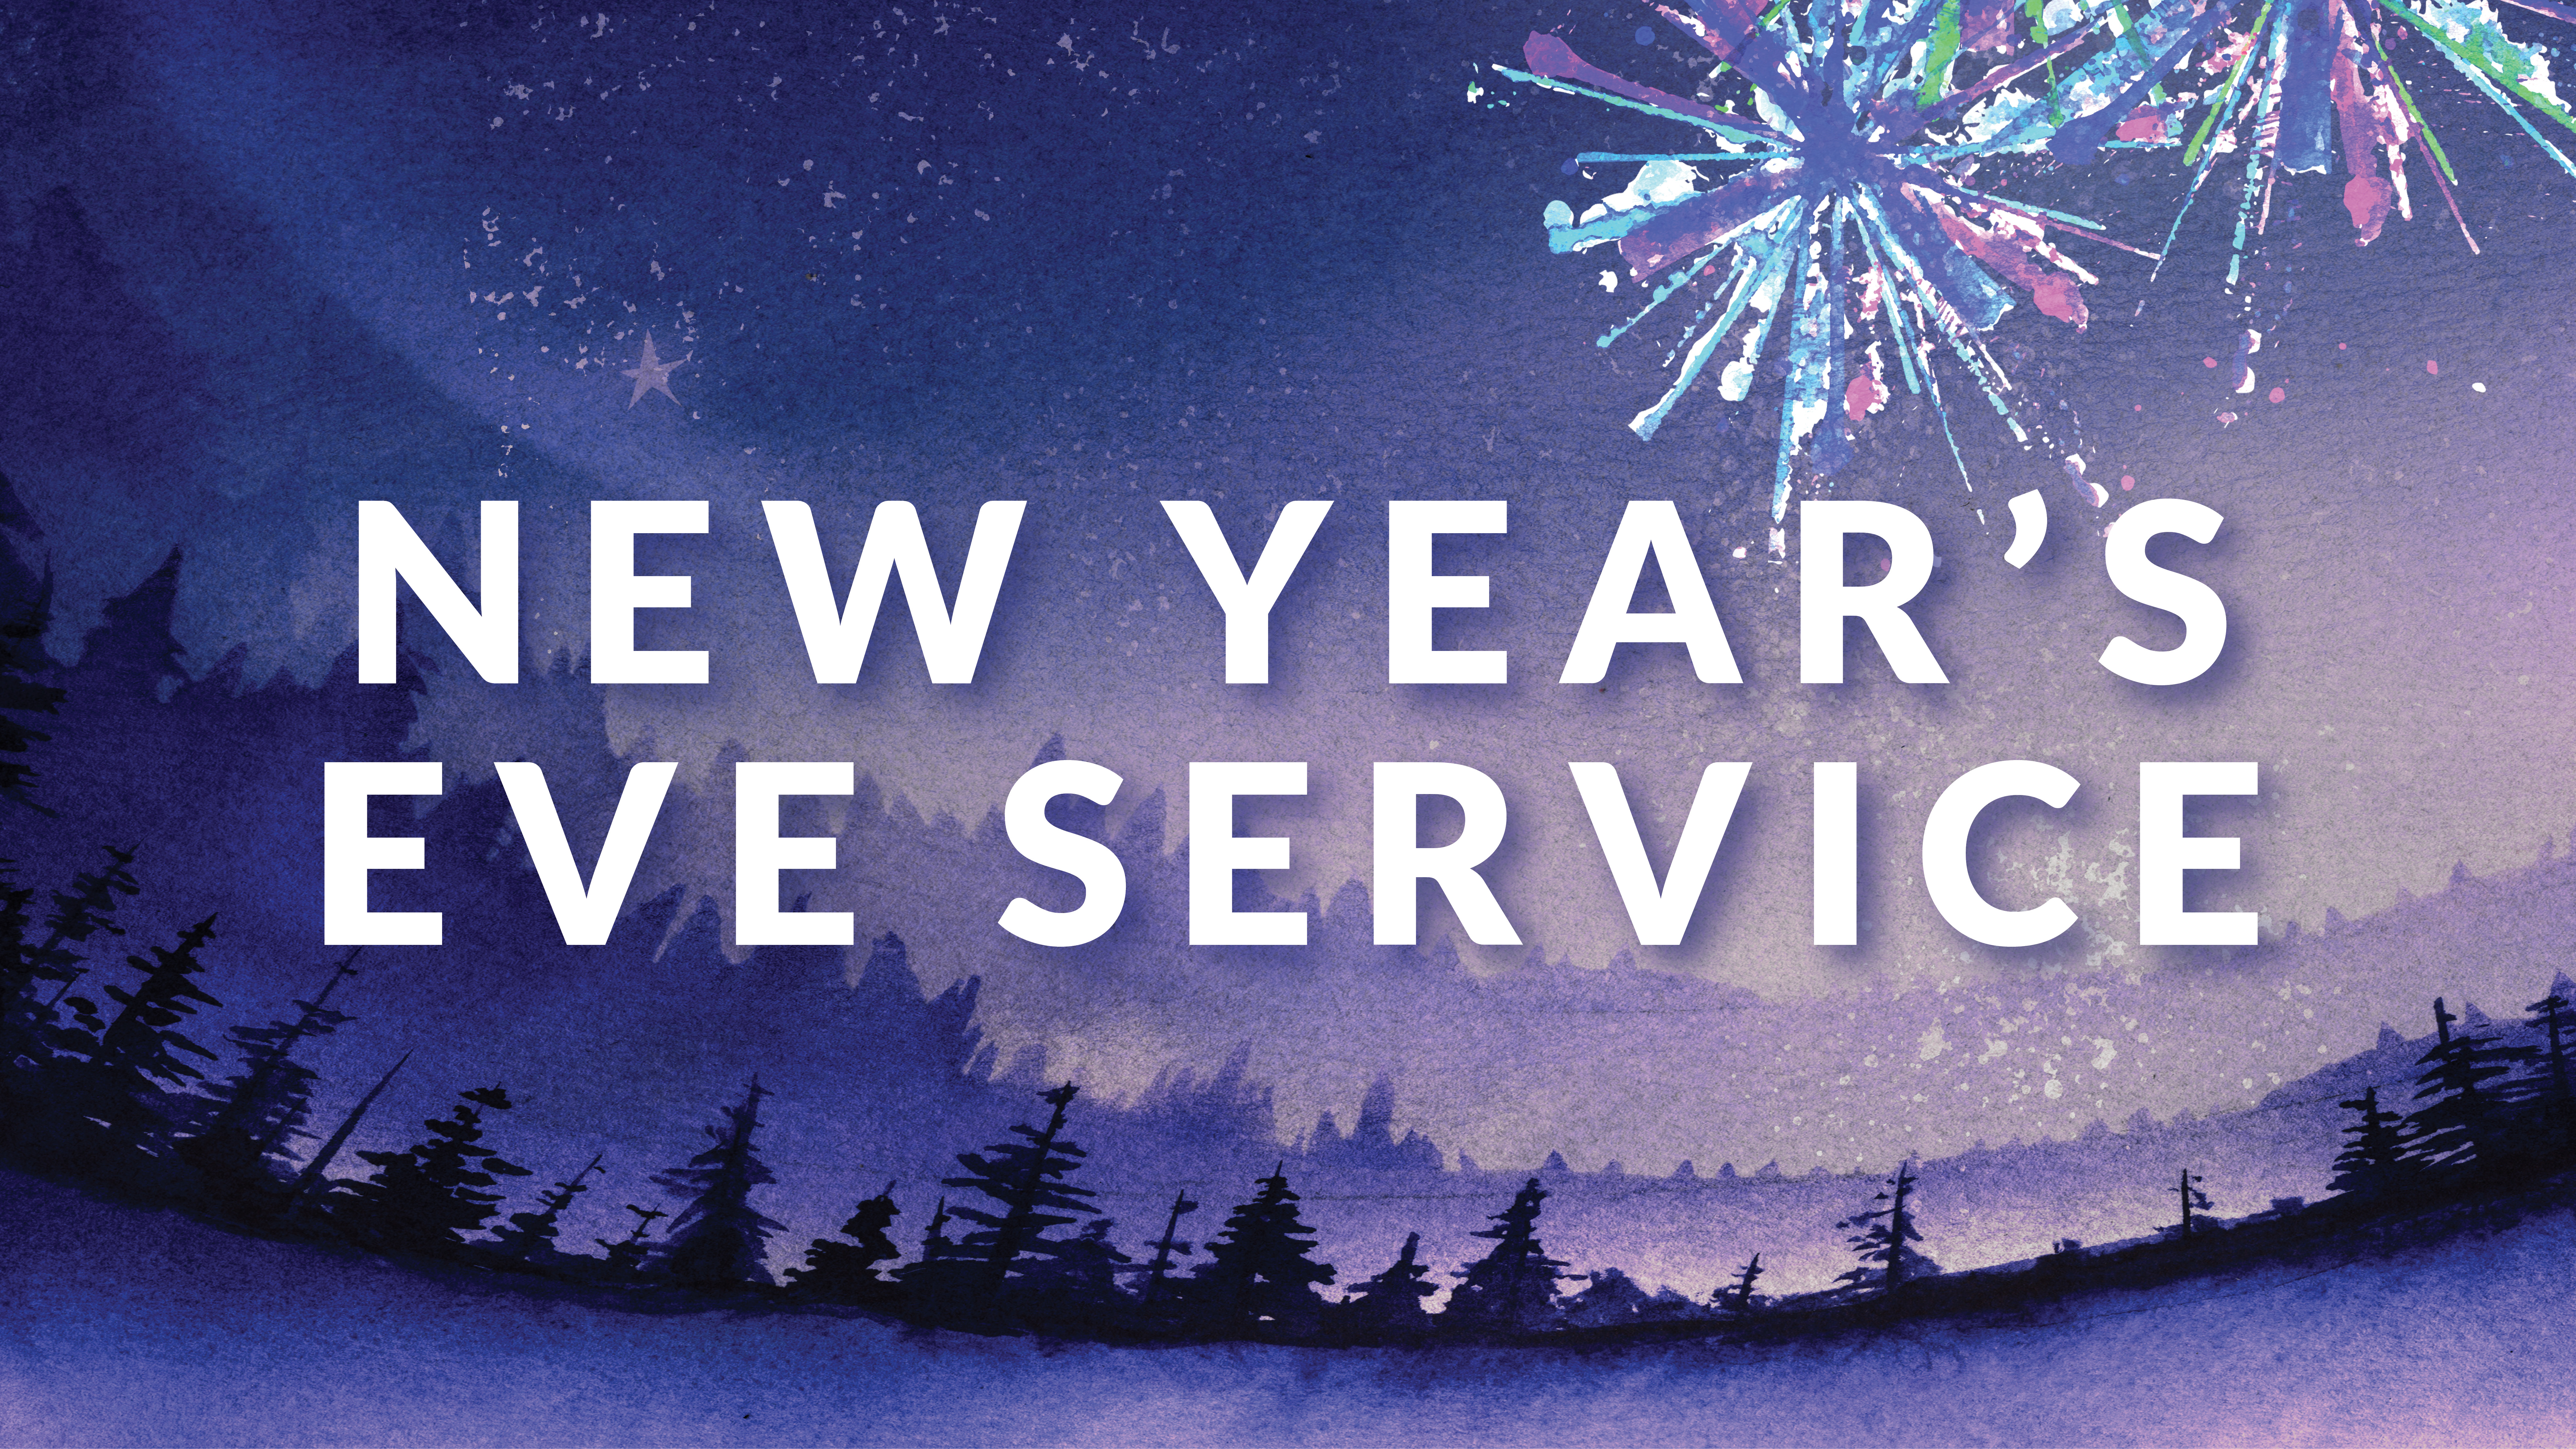 New Year's Eve | The Lord Bless You | Matt Holtzman